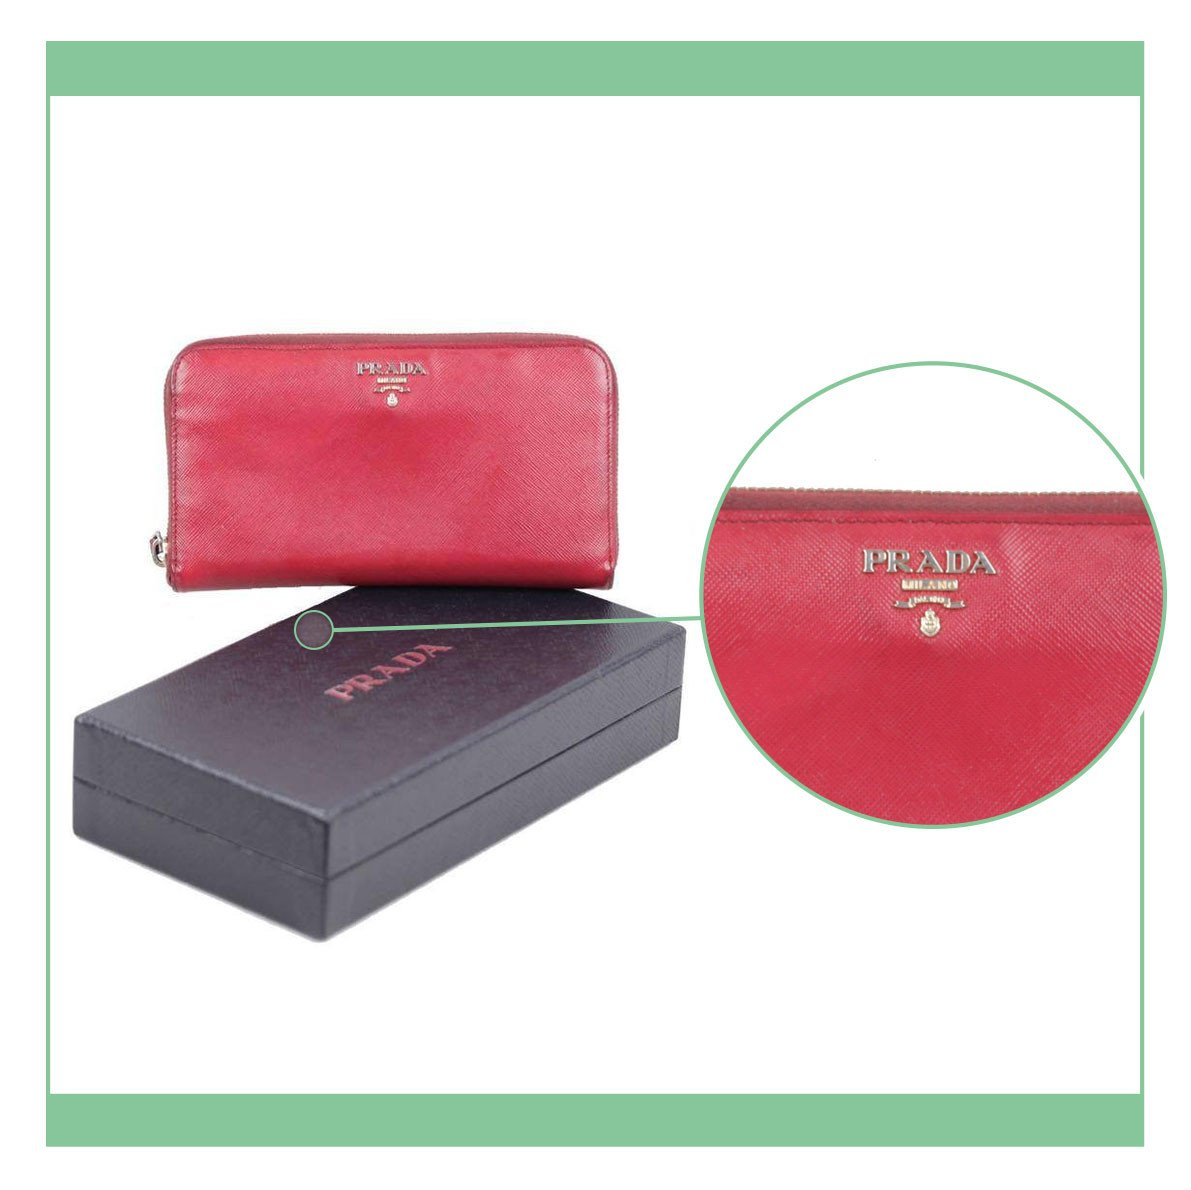 eba2299841cd6d Check carefully and compare logos and fonts with the images we provide, and  the ones you can see from our Prada selection. Some models will have the  logo ...